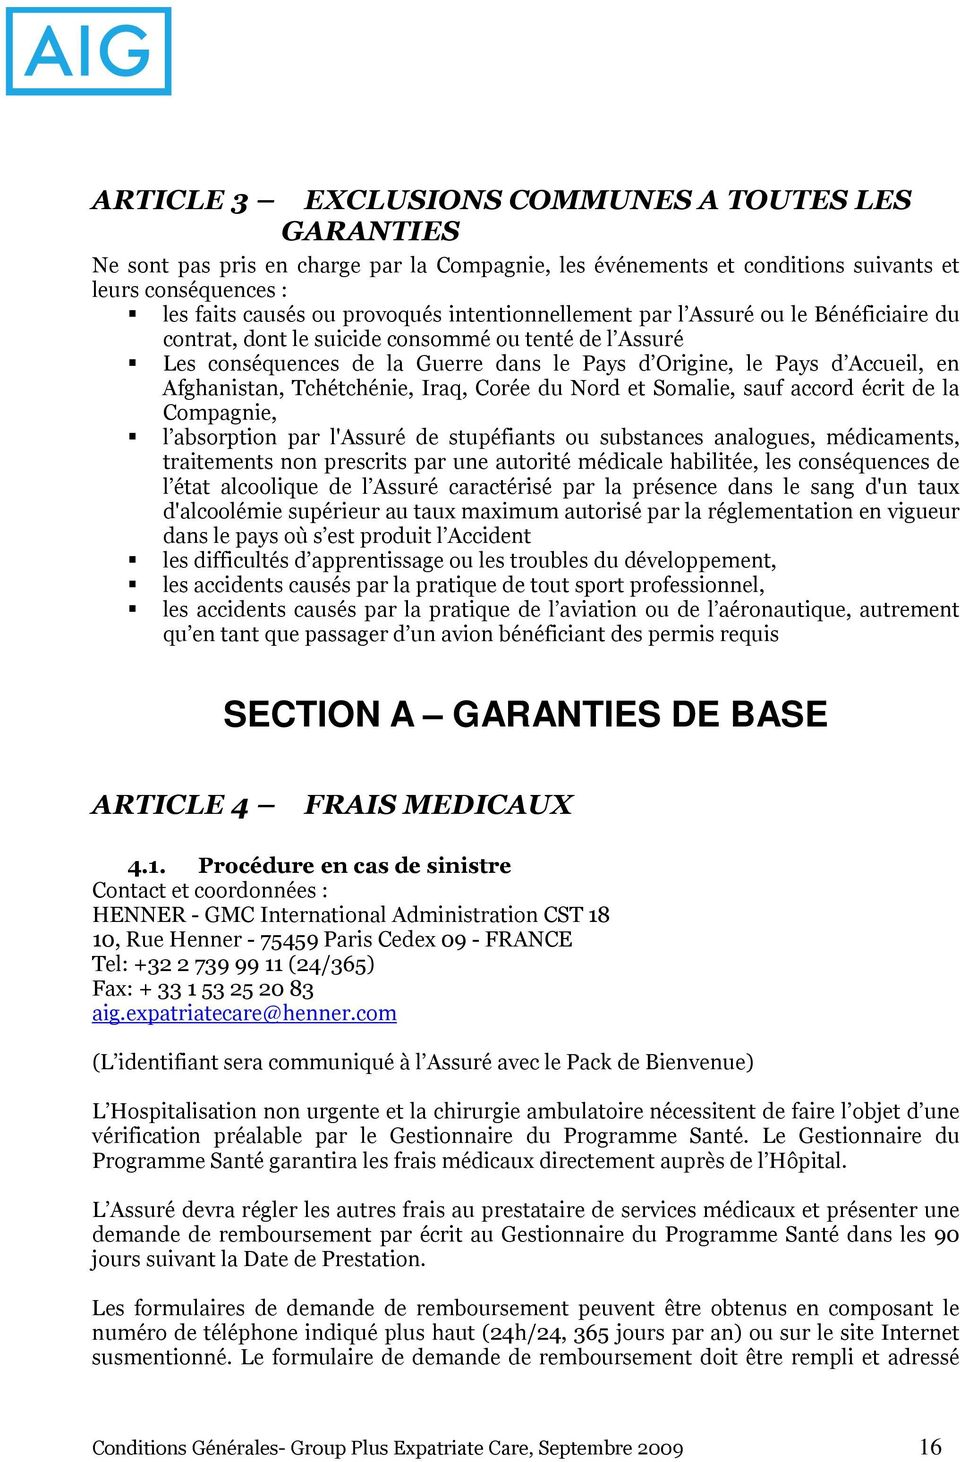 Tchétchénie, Iraq, Corée du Nord et Somalie, sauf accord écrit de la Compagnie, l absorption par l'assuré de stupéfiants ou substances analogues, médicaments, traitements non prescrits par une